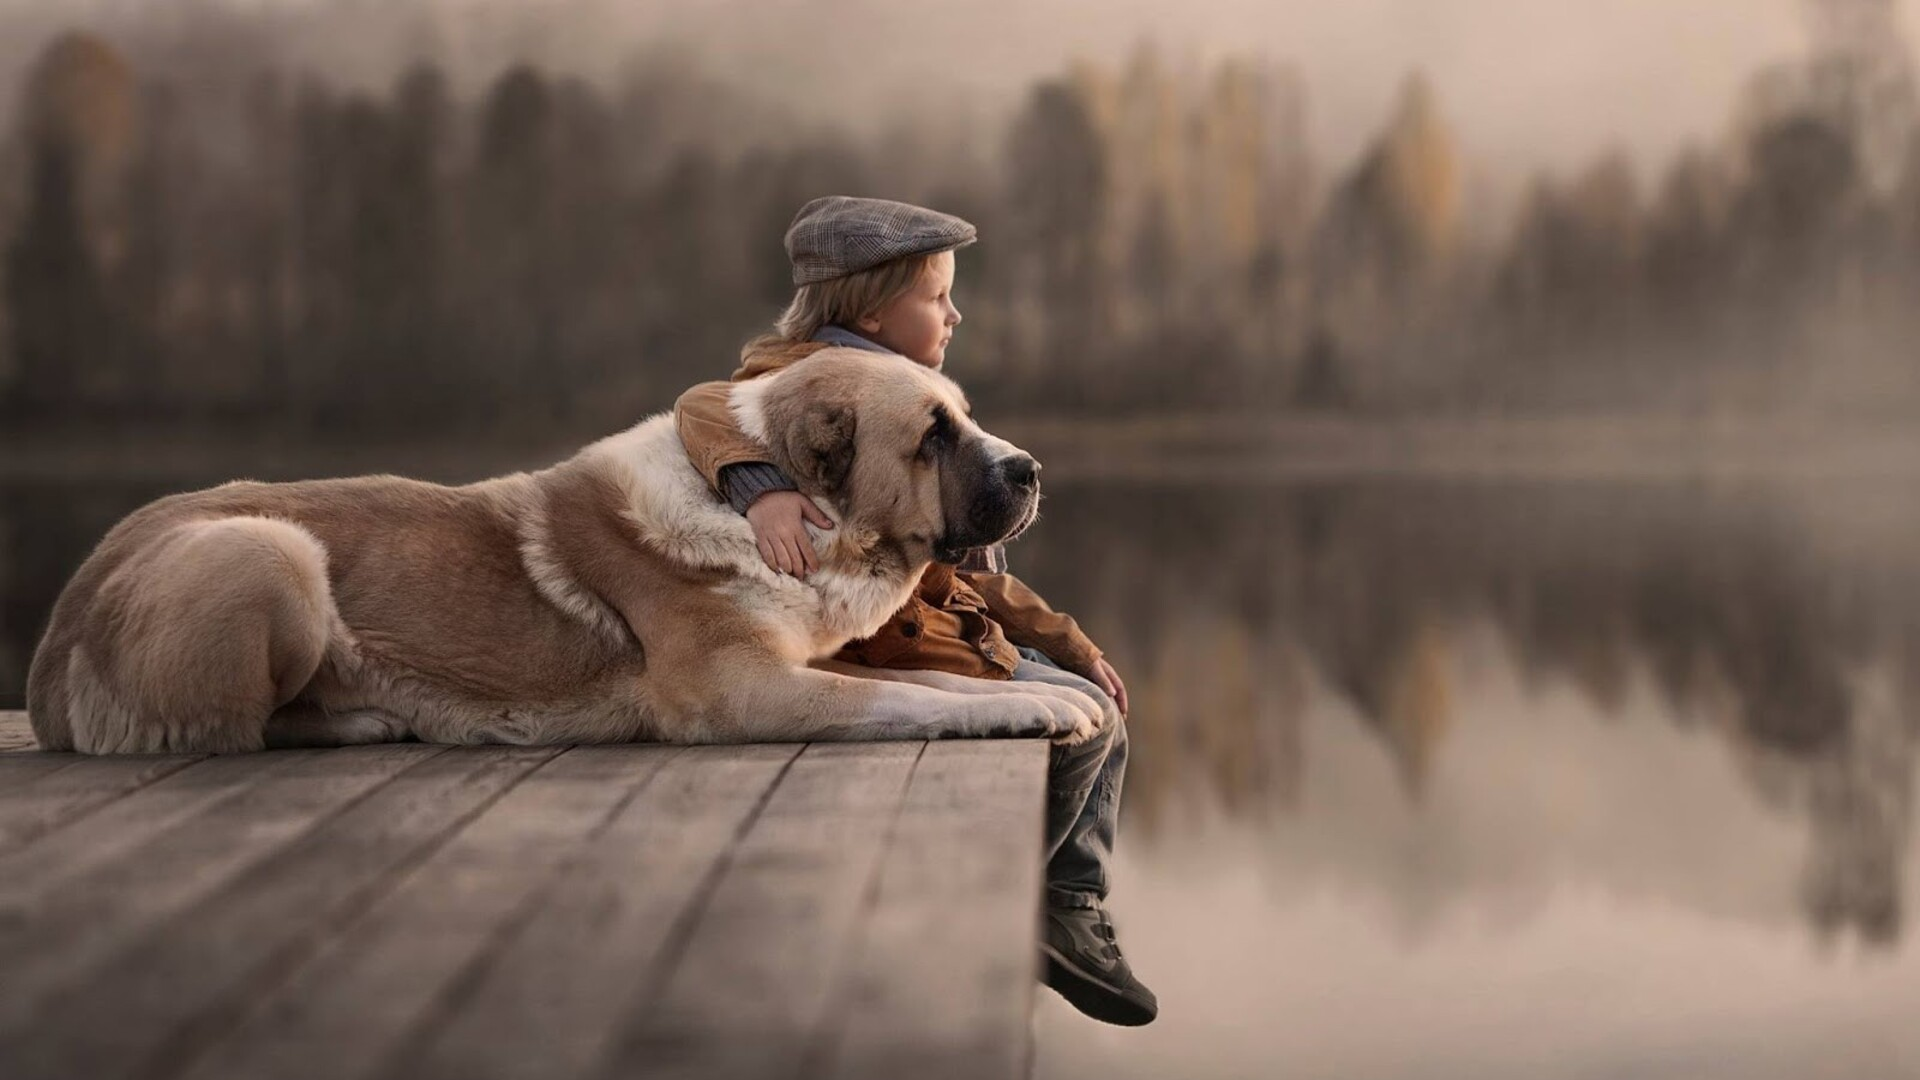 1920x1080 Kids And Dogs Laptop Full Hd 1080p Hd 4k Wallpapers Images Backgrounds Photos And Pictures